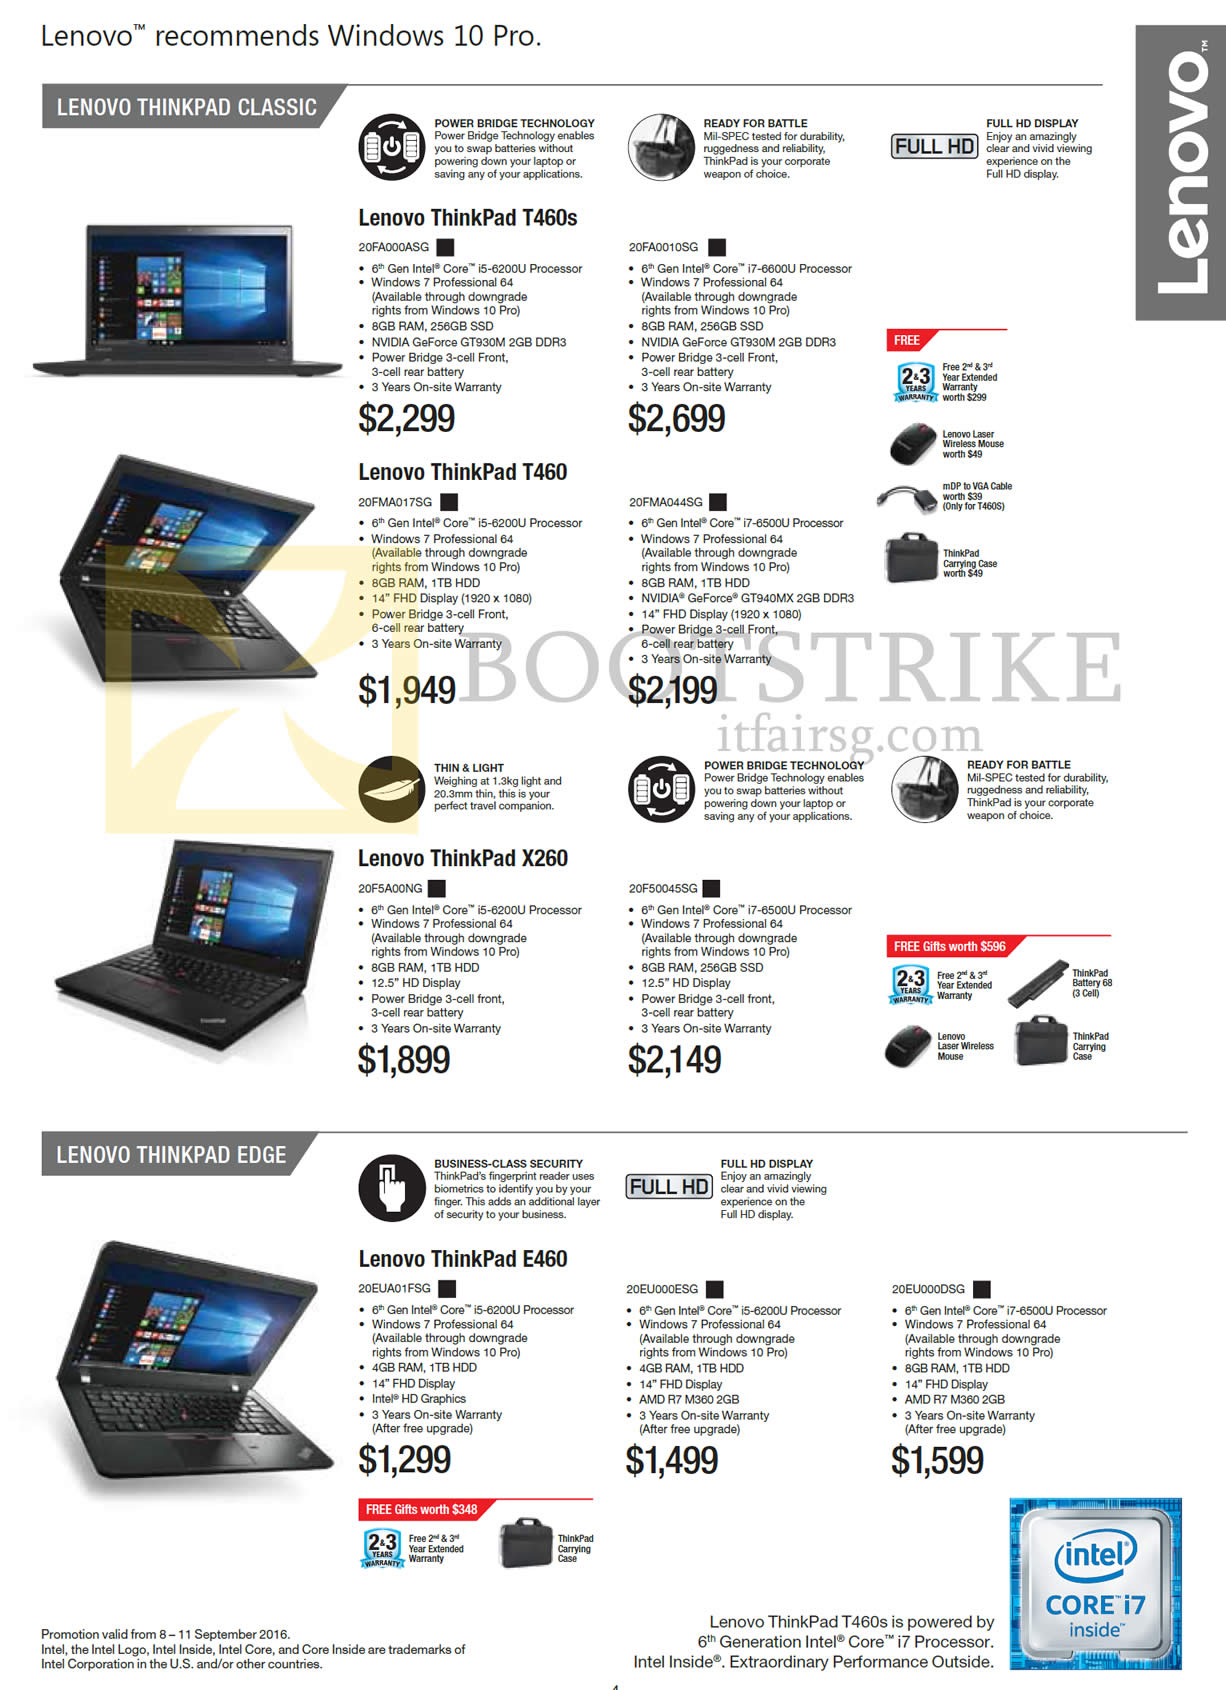 COMEX 2016 price list image brochure of Lenovo Notebooks ThinkPad Classic T460s, T460, X260, Edge E460